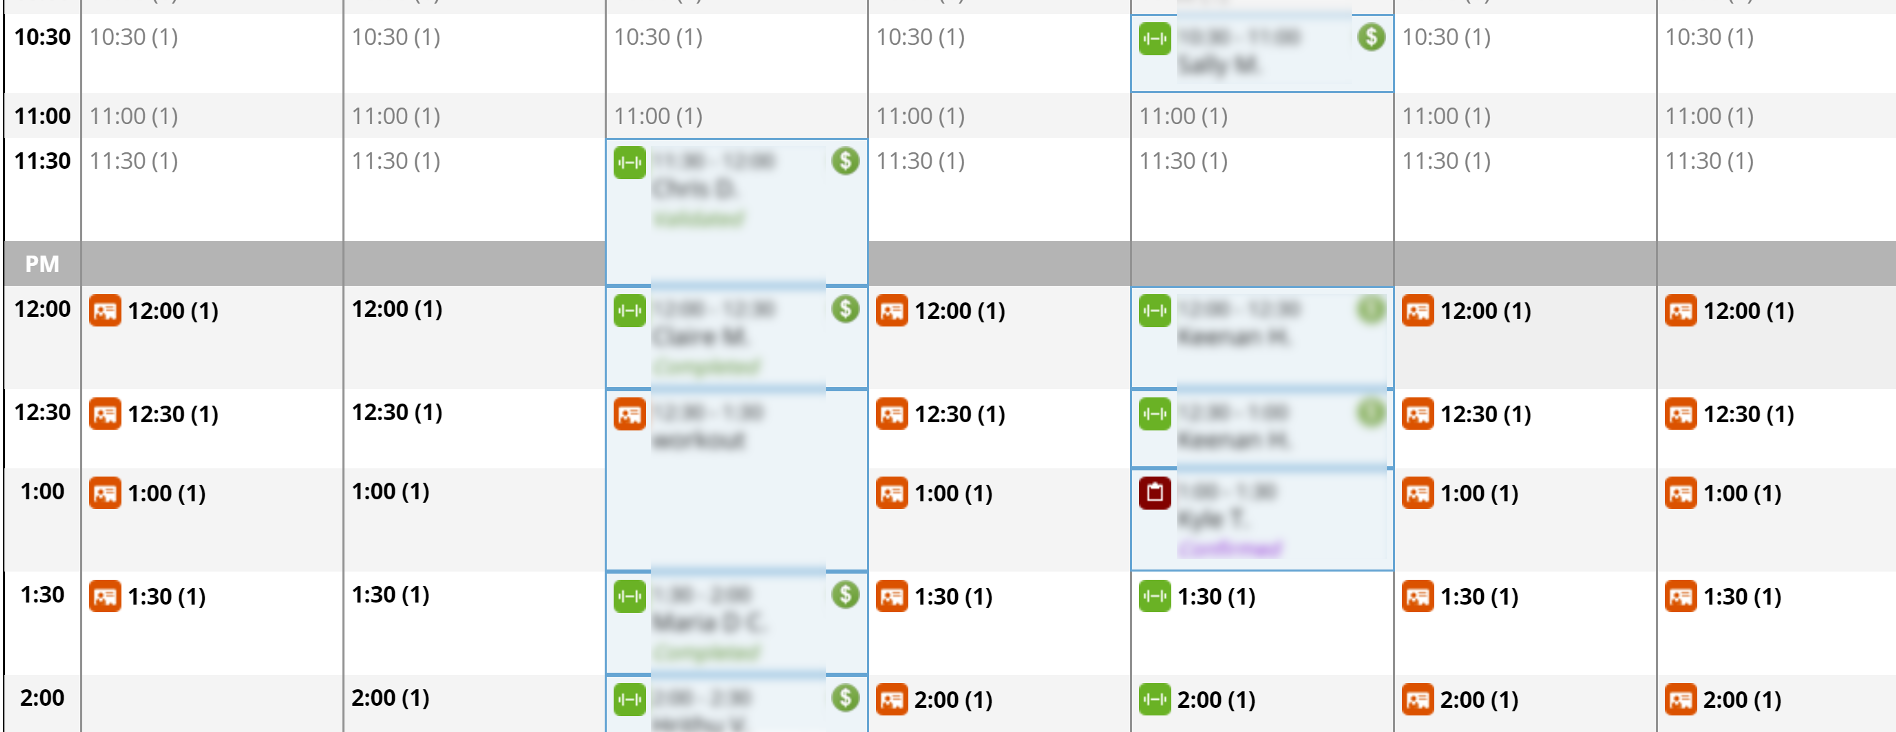 calendarwithicons.png